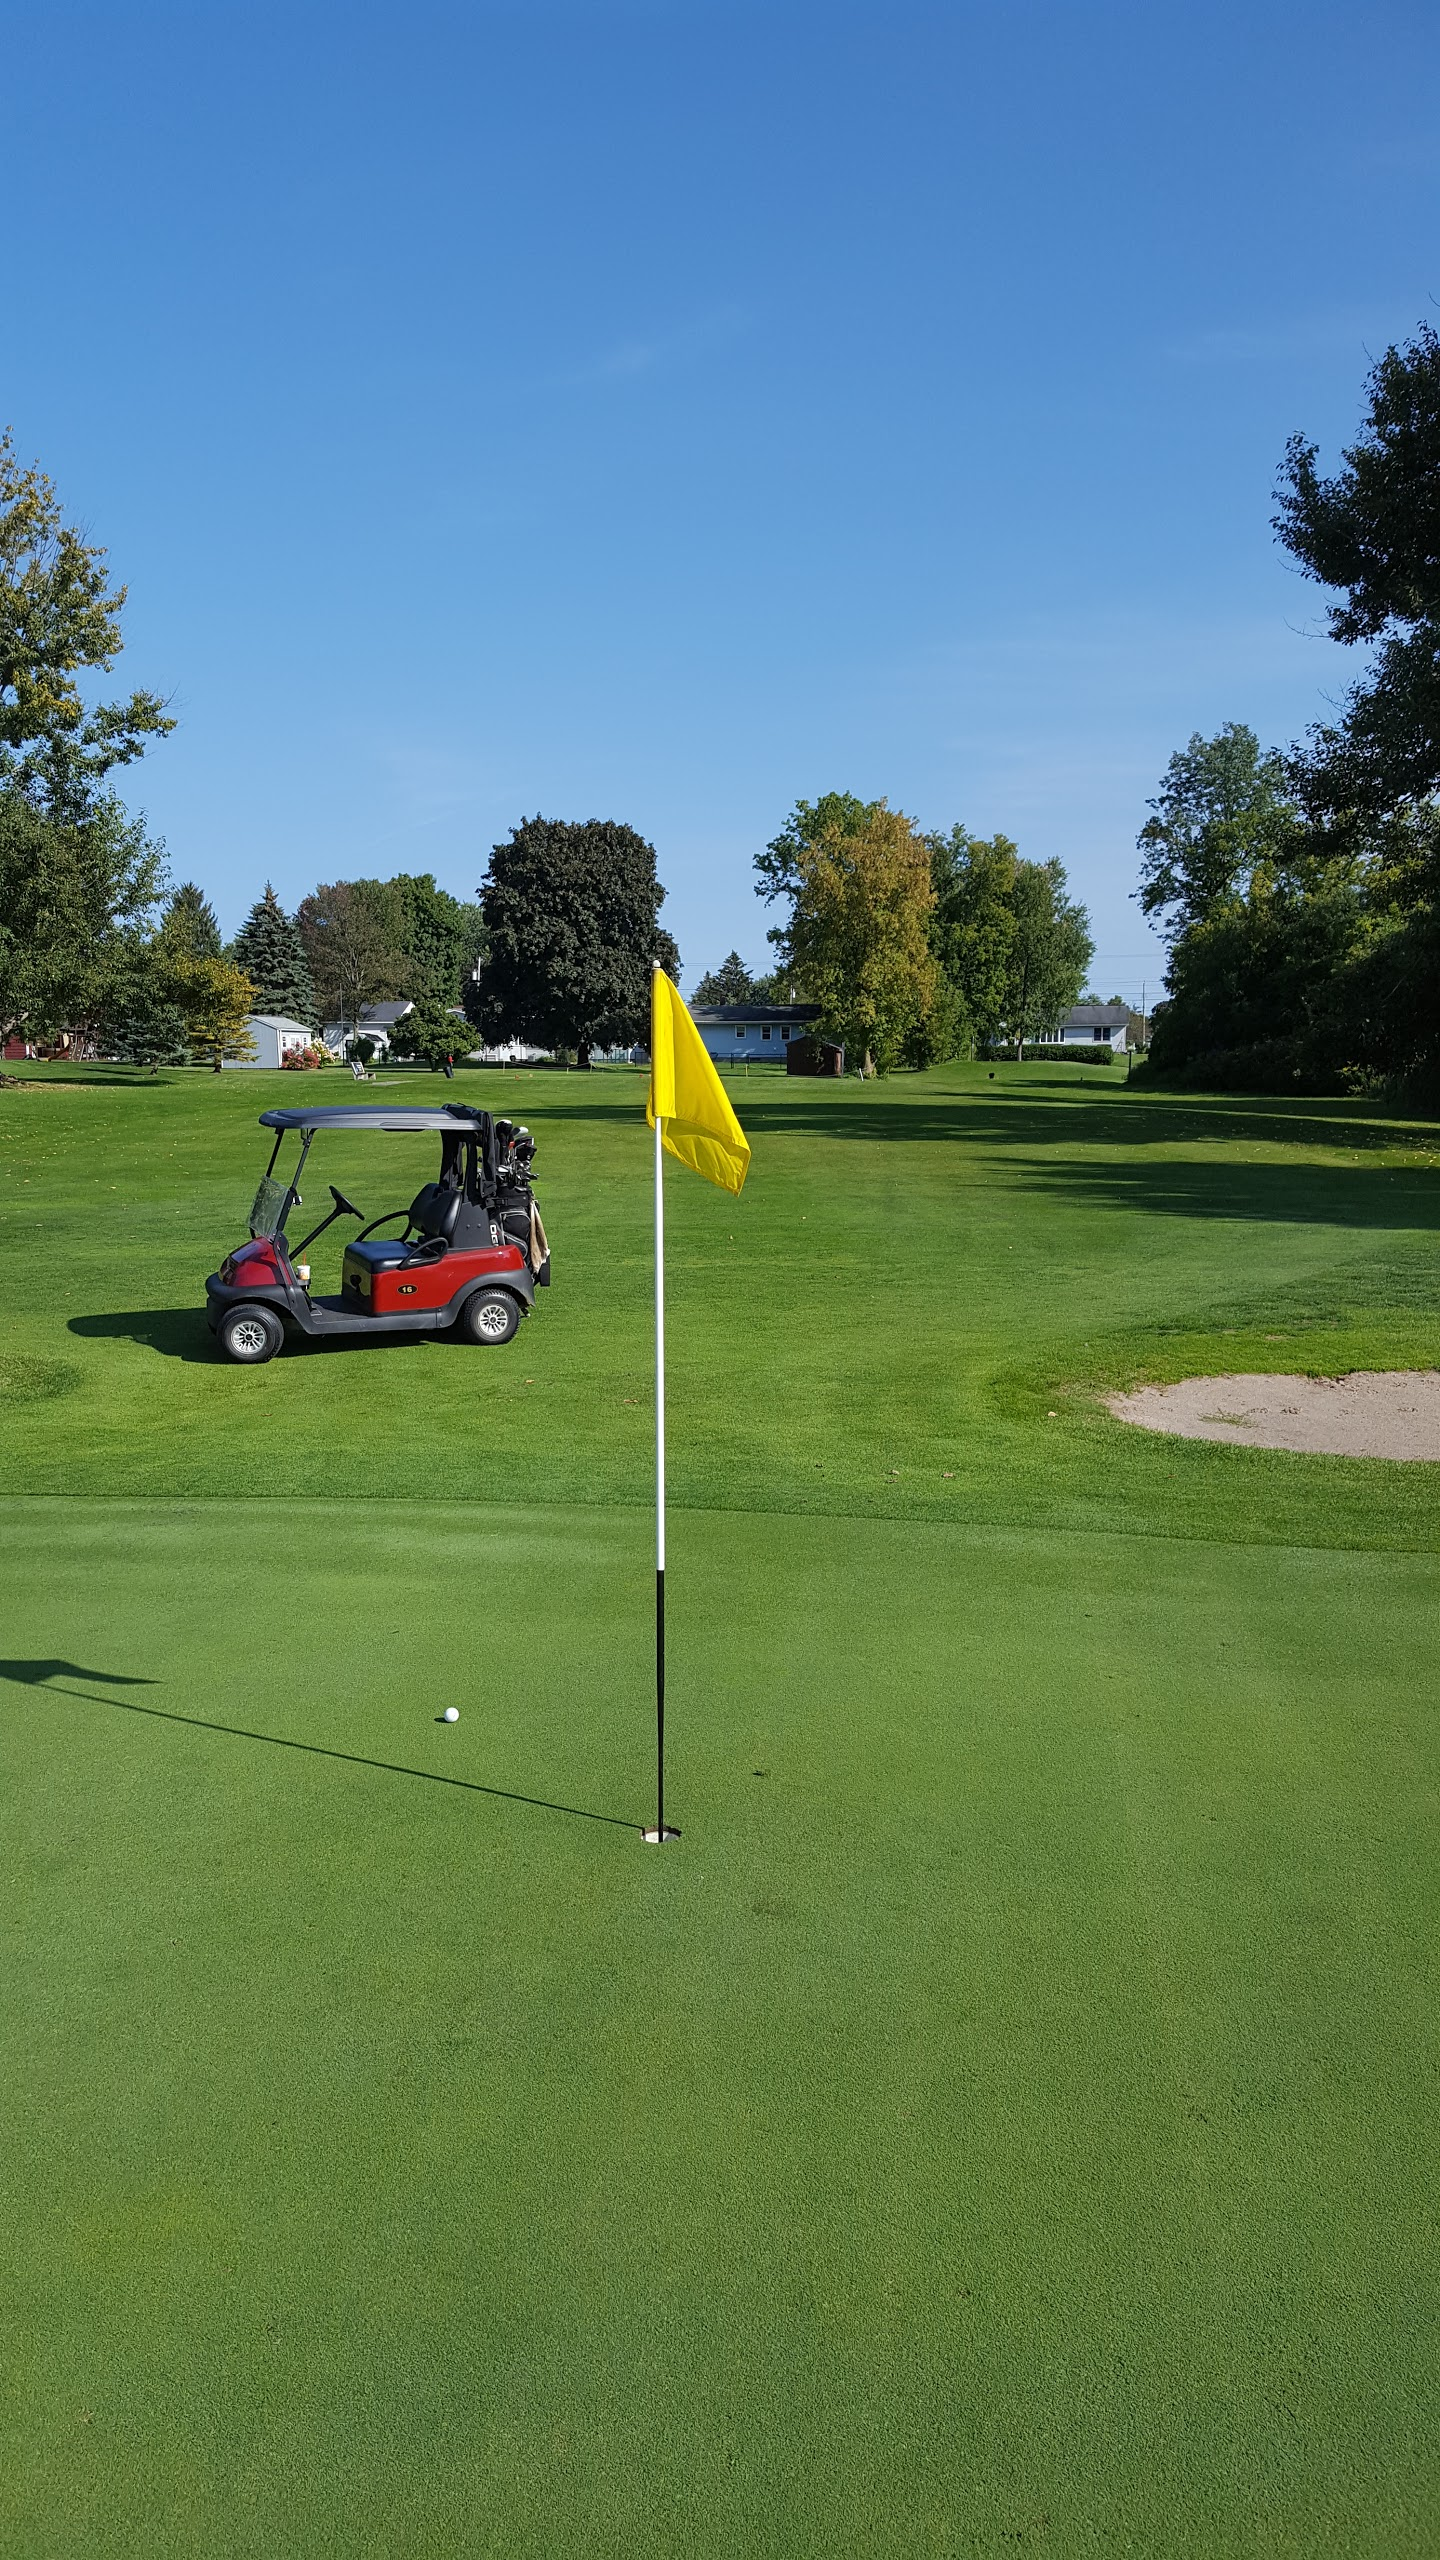 golf green with yellow flag with golf cart in the background